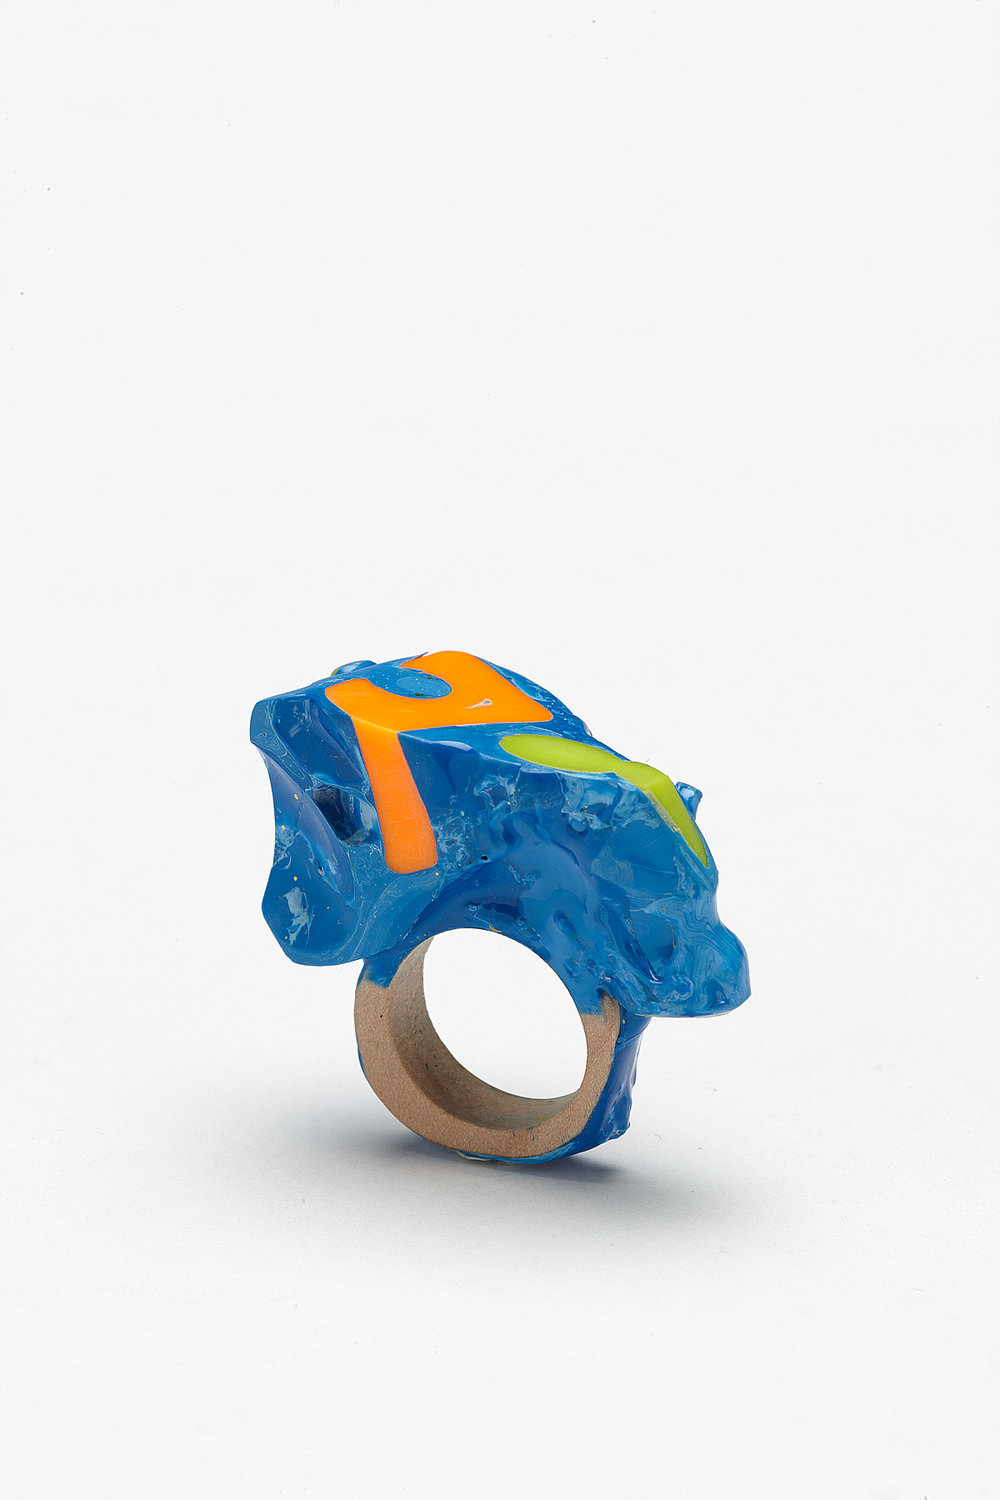 Orange and Tiny Lime Green 1, 2012. Resin, Timber, Plastic Toys. Photo by Jeremy Dillon.